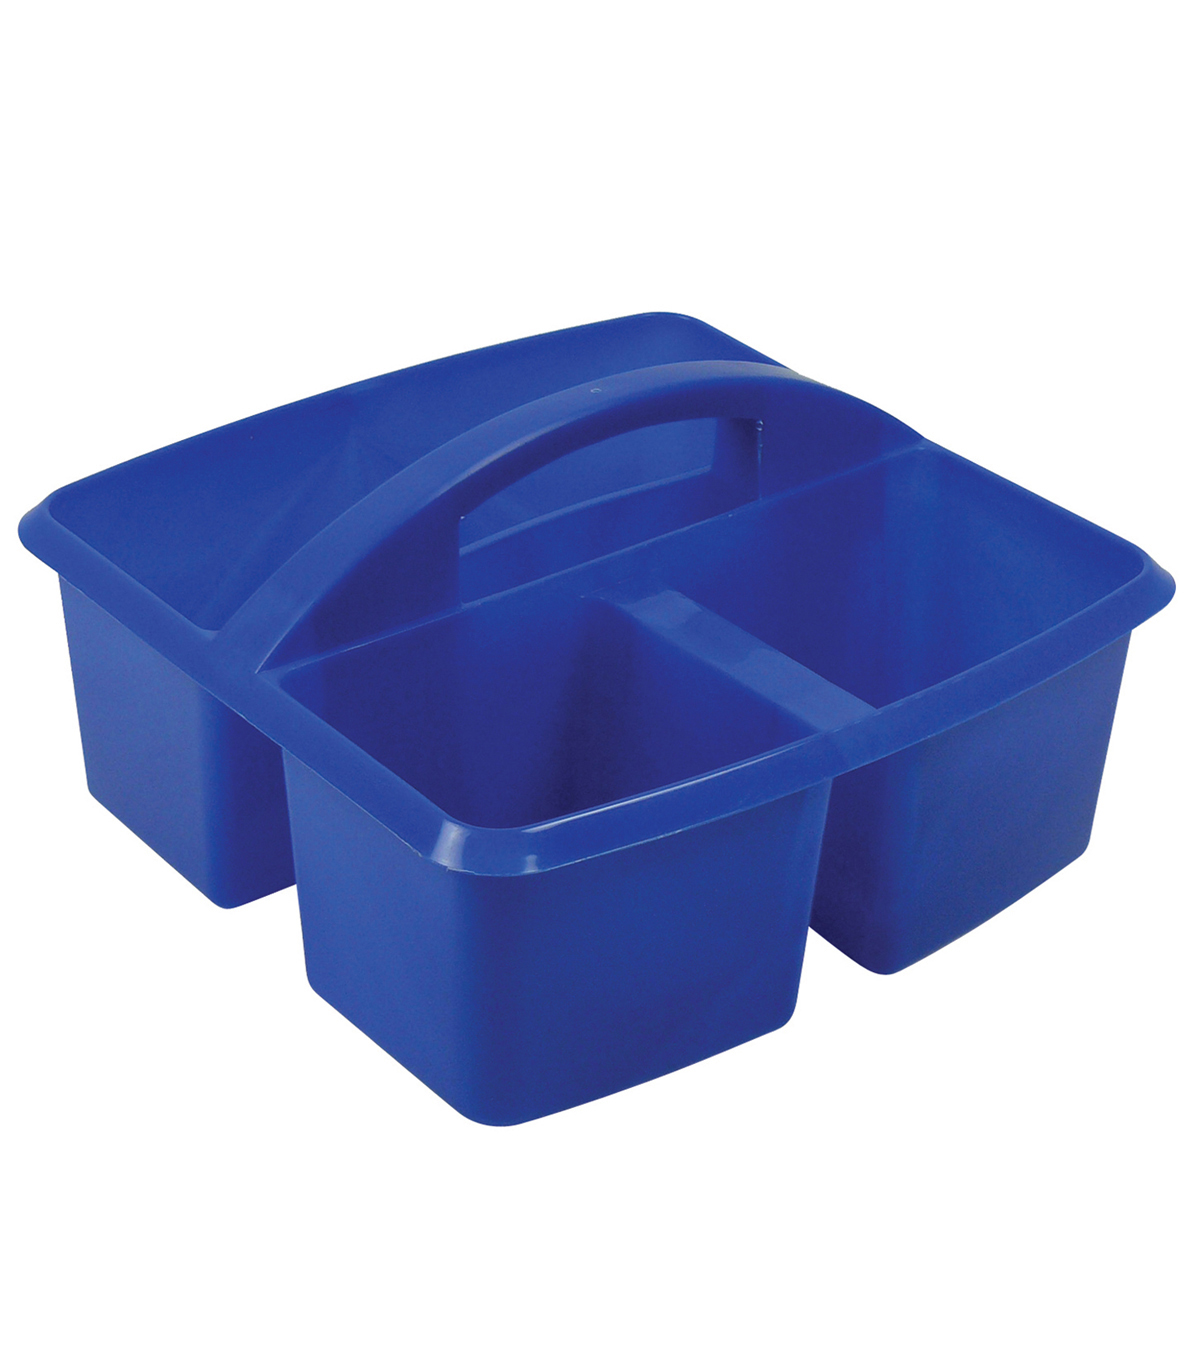 Romanoff Products Small Utility Caddy, Pack of 6, Blue